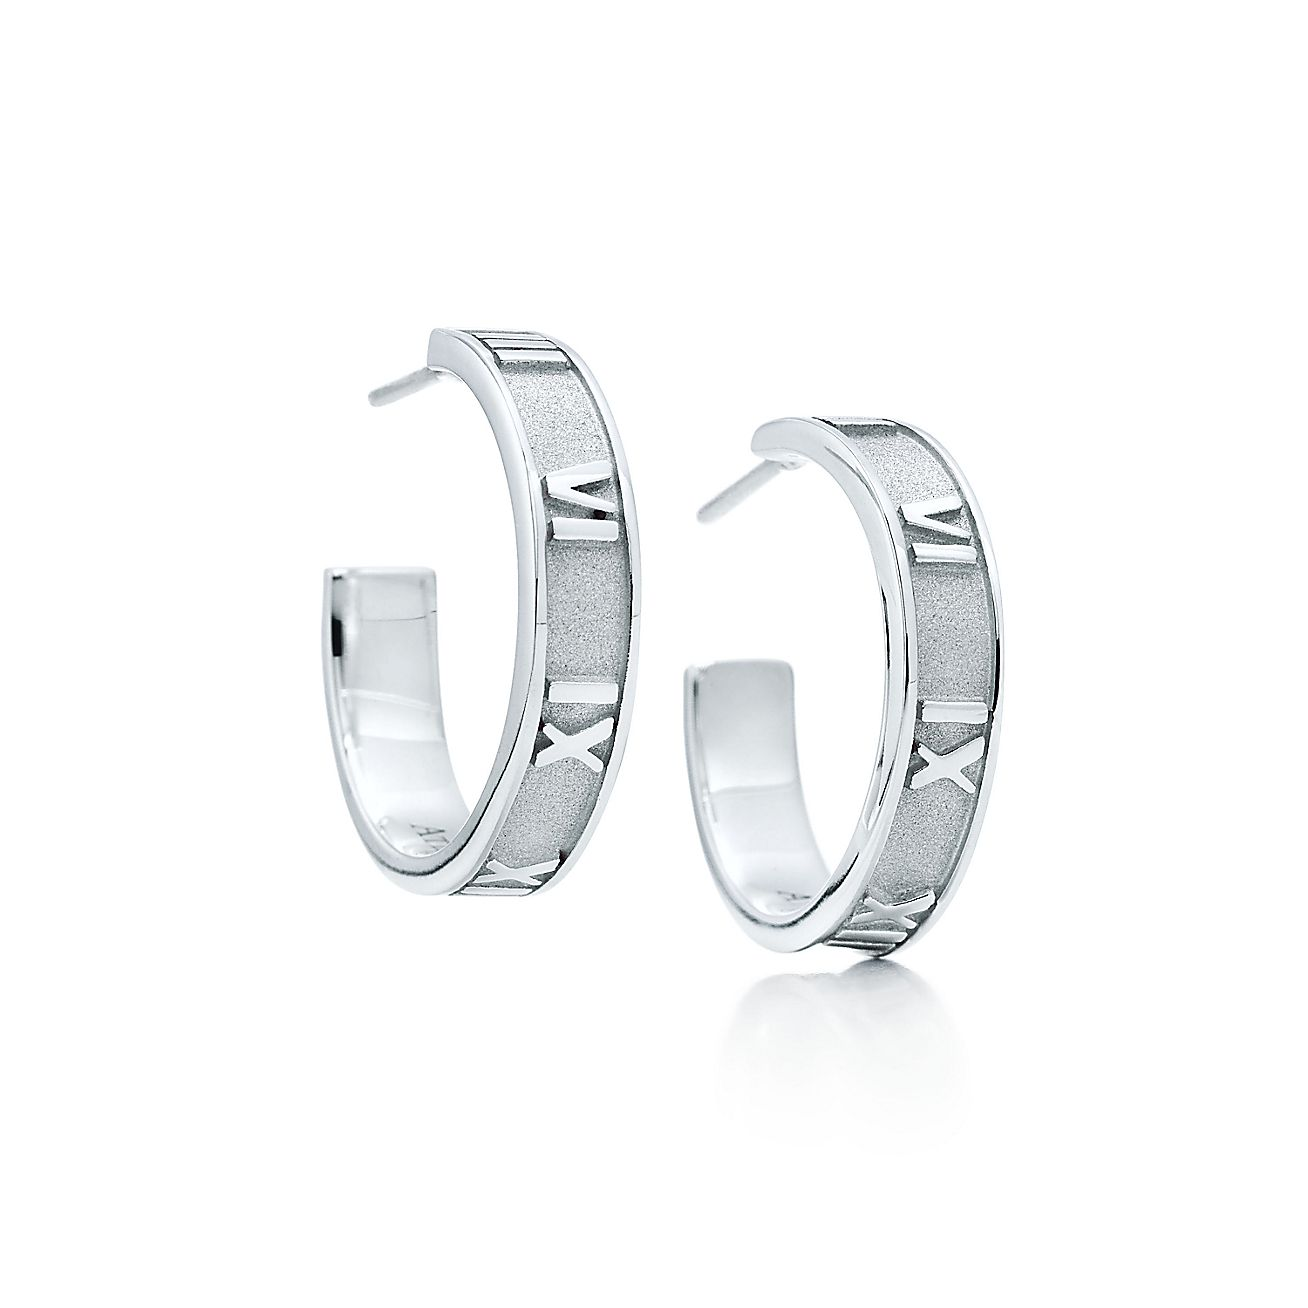 Atlas® hoop earrings